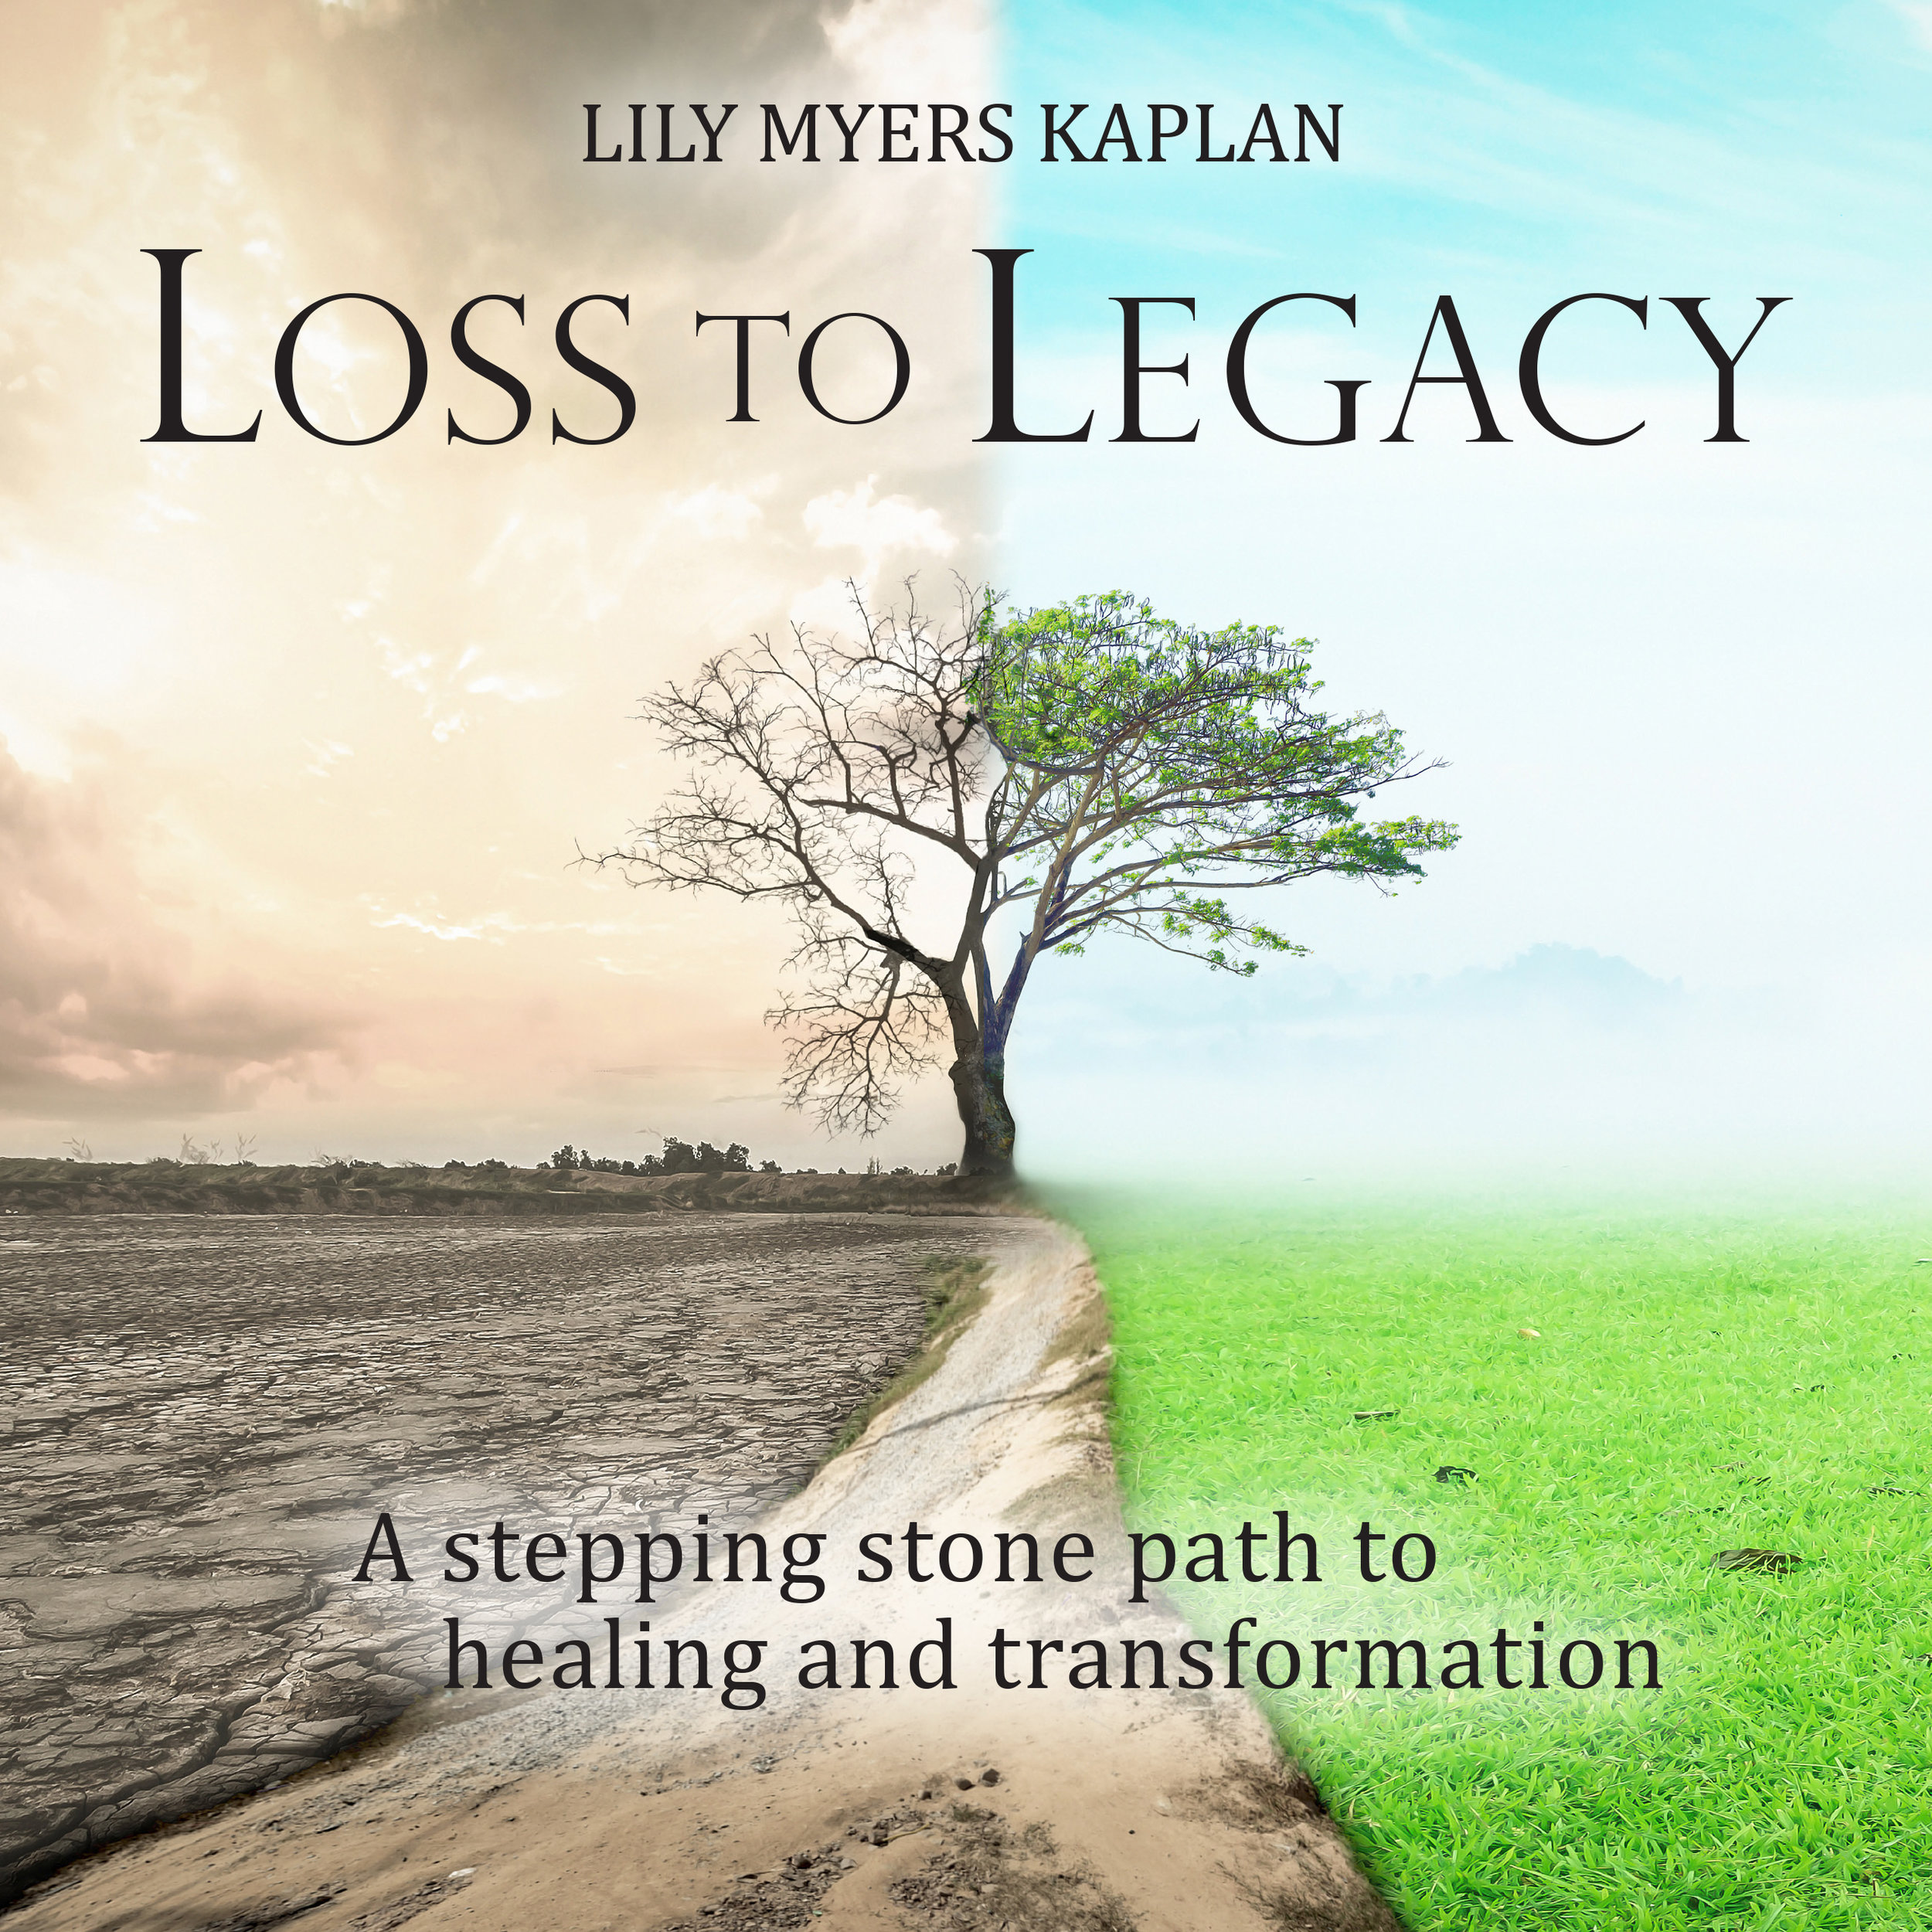 We are excited to announce the publication of Loss to Legacy on October 1, 2019. - Loss to Legacy is a map for conscious grieving. With inspiring stories marking the passage from darkness into light, Lily Myers Kaplan offers a method for honoring your sorrow while growing from it. Loss is universal, she says. Whether you are bemoaning cultural and planetary upheaval or grieving the death of someone you love, dissolution of a marriage, career, or changing identity, this book will help you navigate its tumult.At the core of Loss to Legacy are ancient truths, natures' cycles, and acceptance of death as an essential part of the human experience. The included Stepping Stones Workbook leads you on a healing and transformational path of inner exploration and soul-renewing exercises. Follow it, memorializing your loved ones and respecting your losses, to find meaning, create purpose, and build a living legacy—leaving what matters most in your own wake.PRE-ORDERS WILL BE ACCEPTED BEGINNING SEPTEMBER 15, 2019DETAILS COMING SOON…